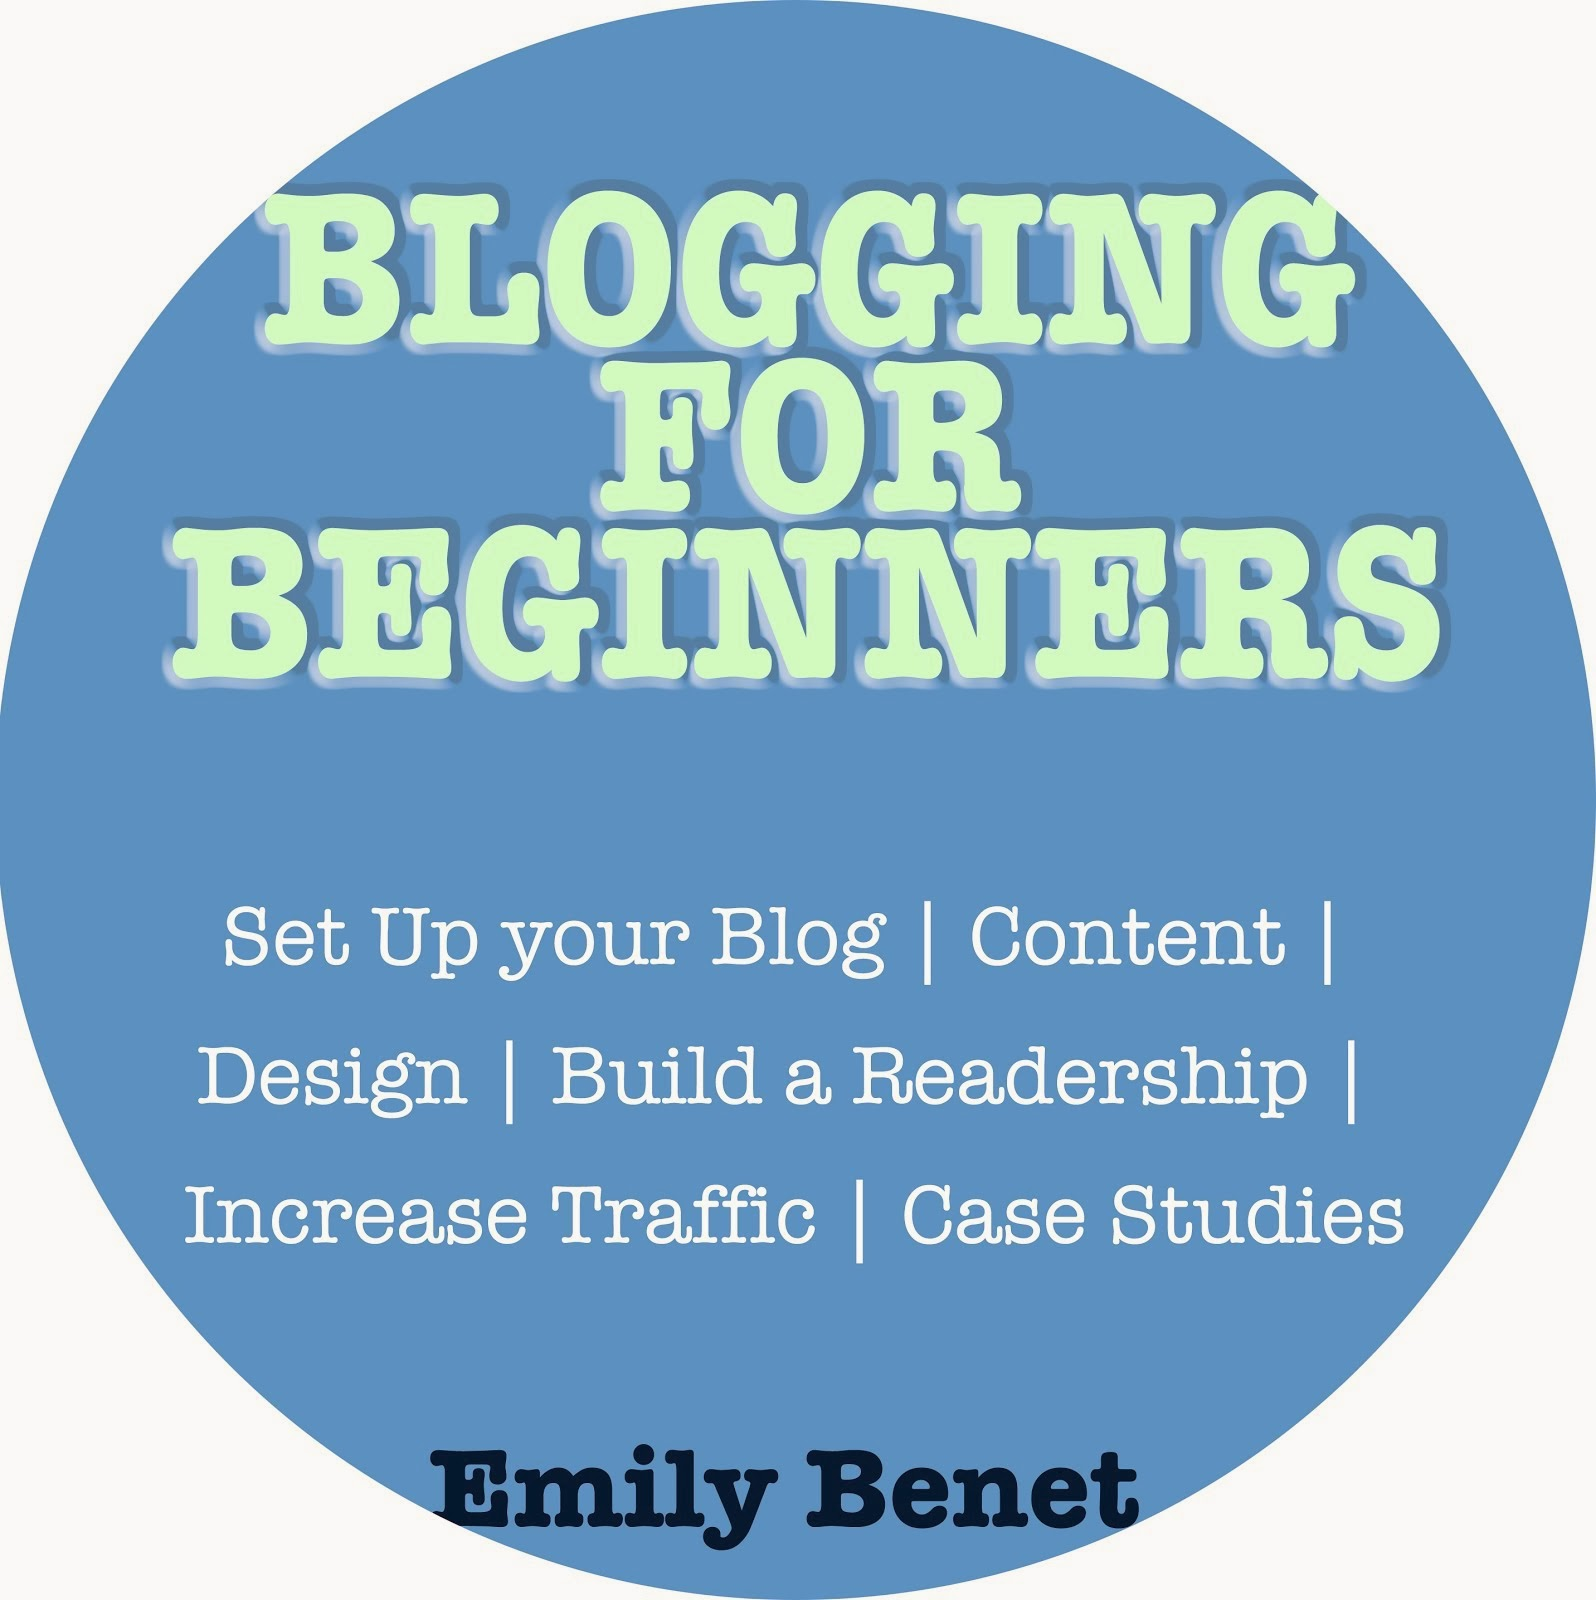 NEW: Blogging for Beginners eBook (£1.92 / $2.99)